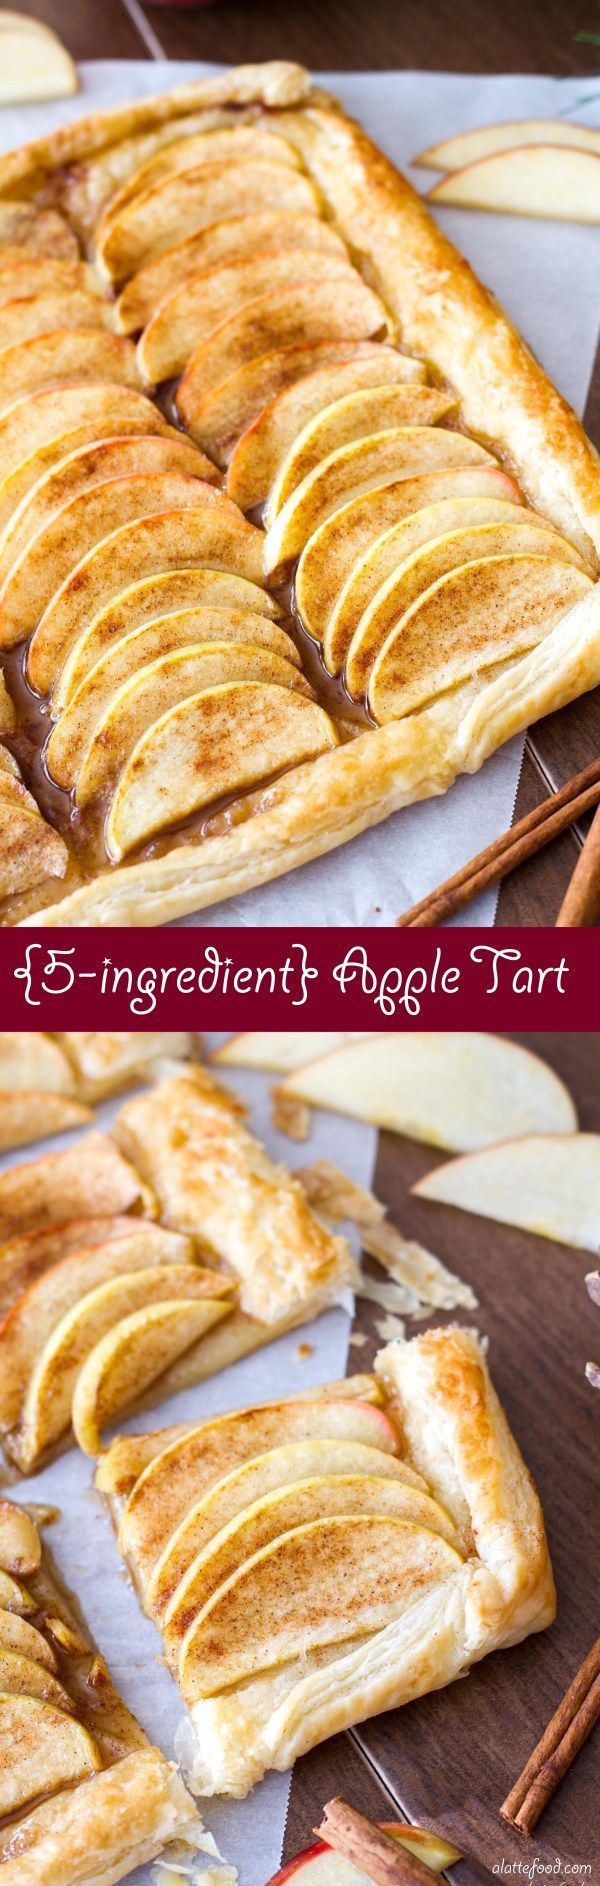 This easy apple tart recipe is made with just 5 ingredients! The perfect fall dessert!